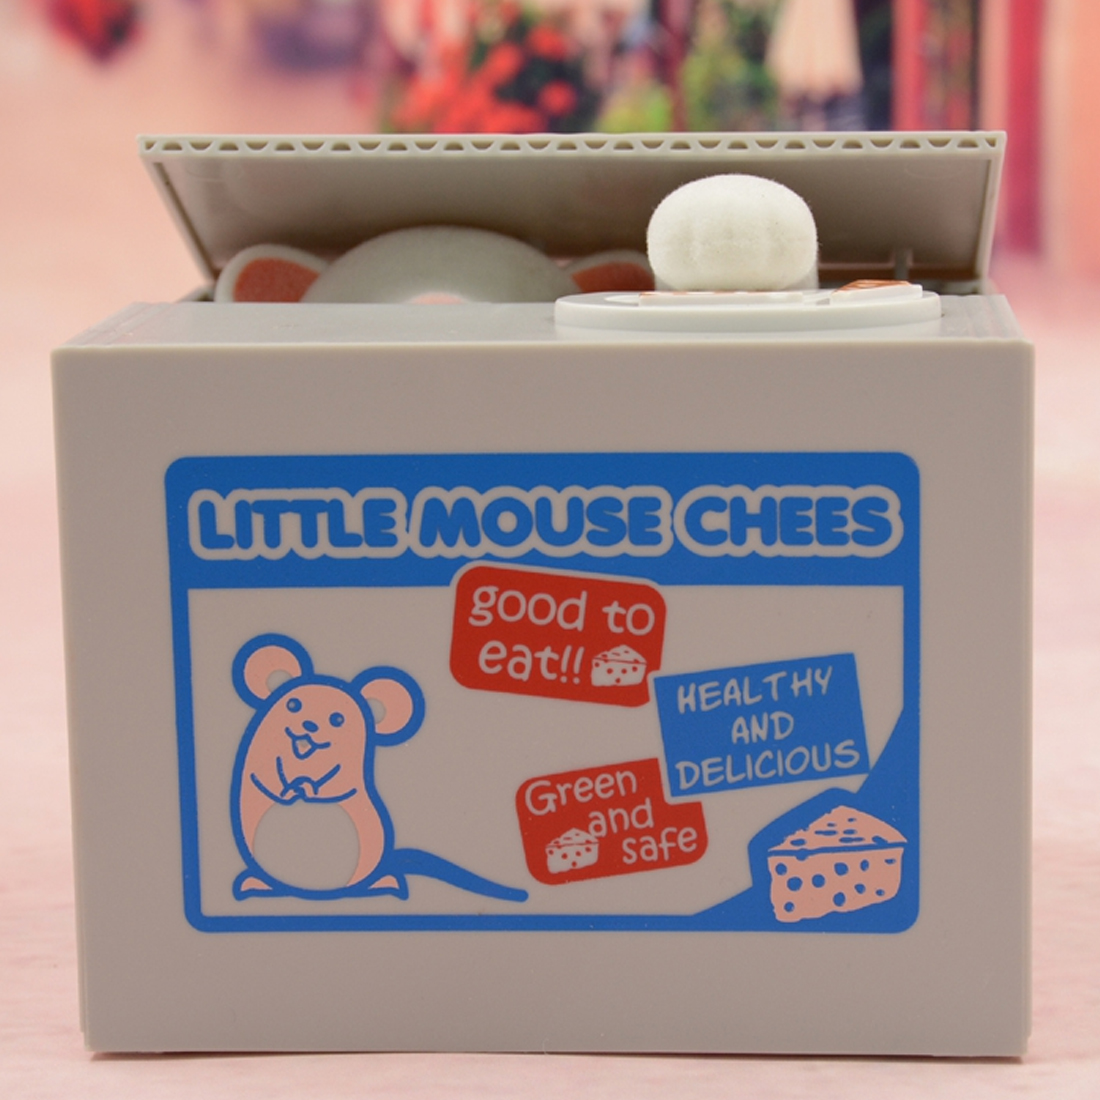 Safe Box Safes Saving Money Coin Bank Gifts for Kids New Super Cute Adorable Cat Stealing Piggy Bank Cat Eat Creative Money Box